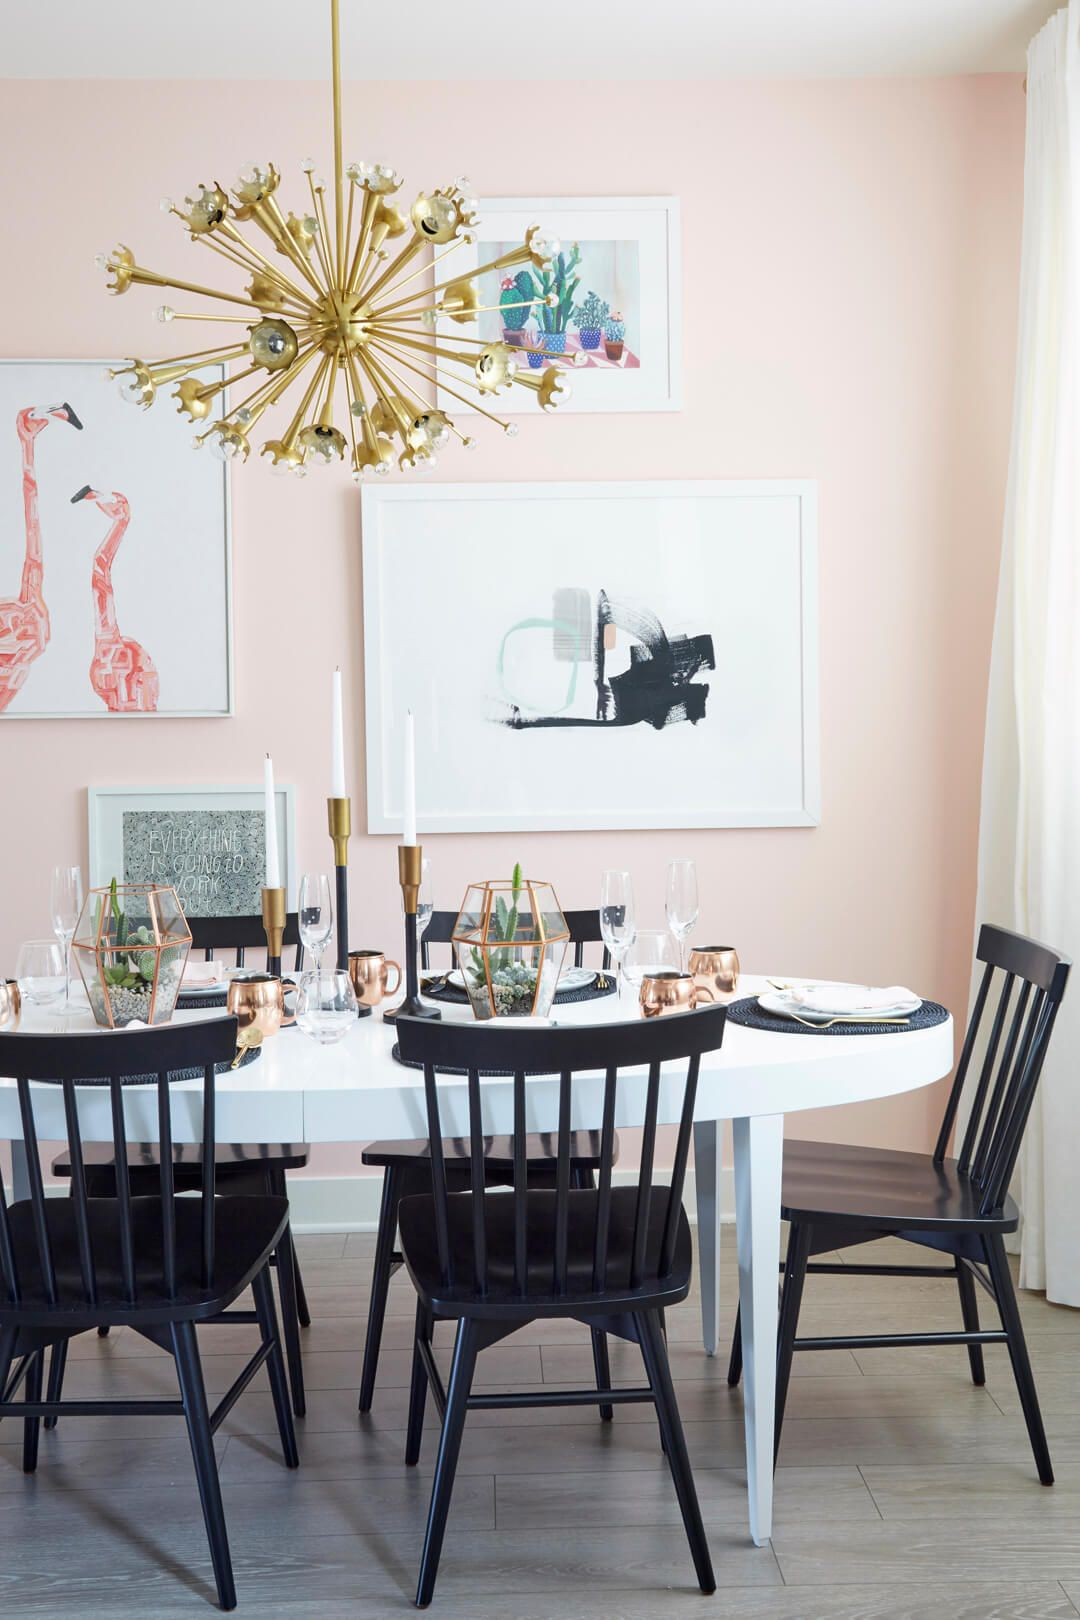 Charmant Courtesy Of Zeke Ruelas For Emily Henderson Designs. Pale Pink. Hereu0027s How  To Paint Your Dining Room ...